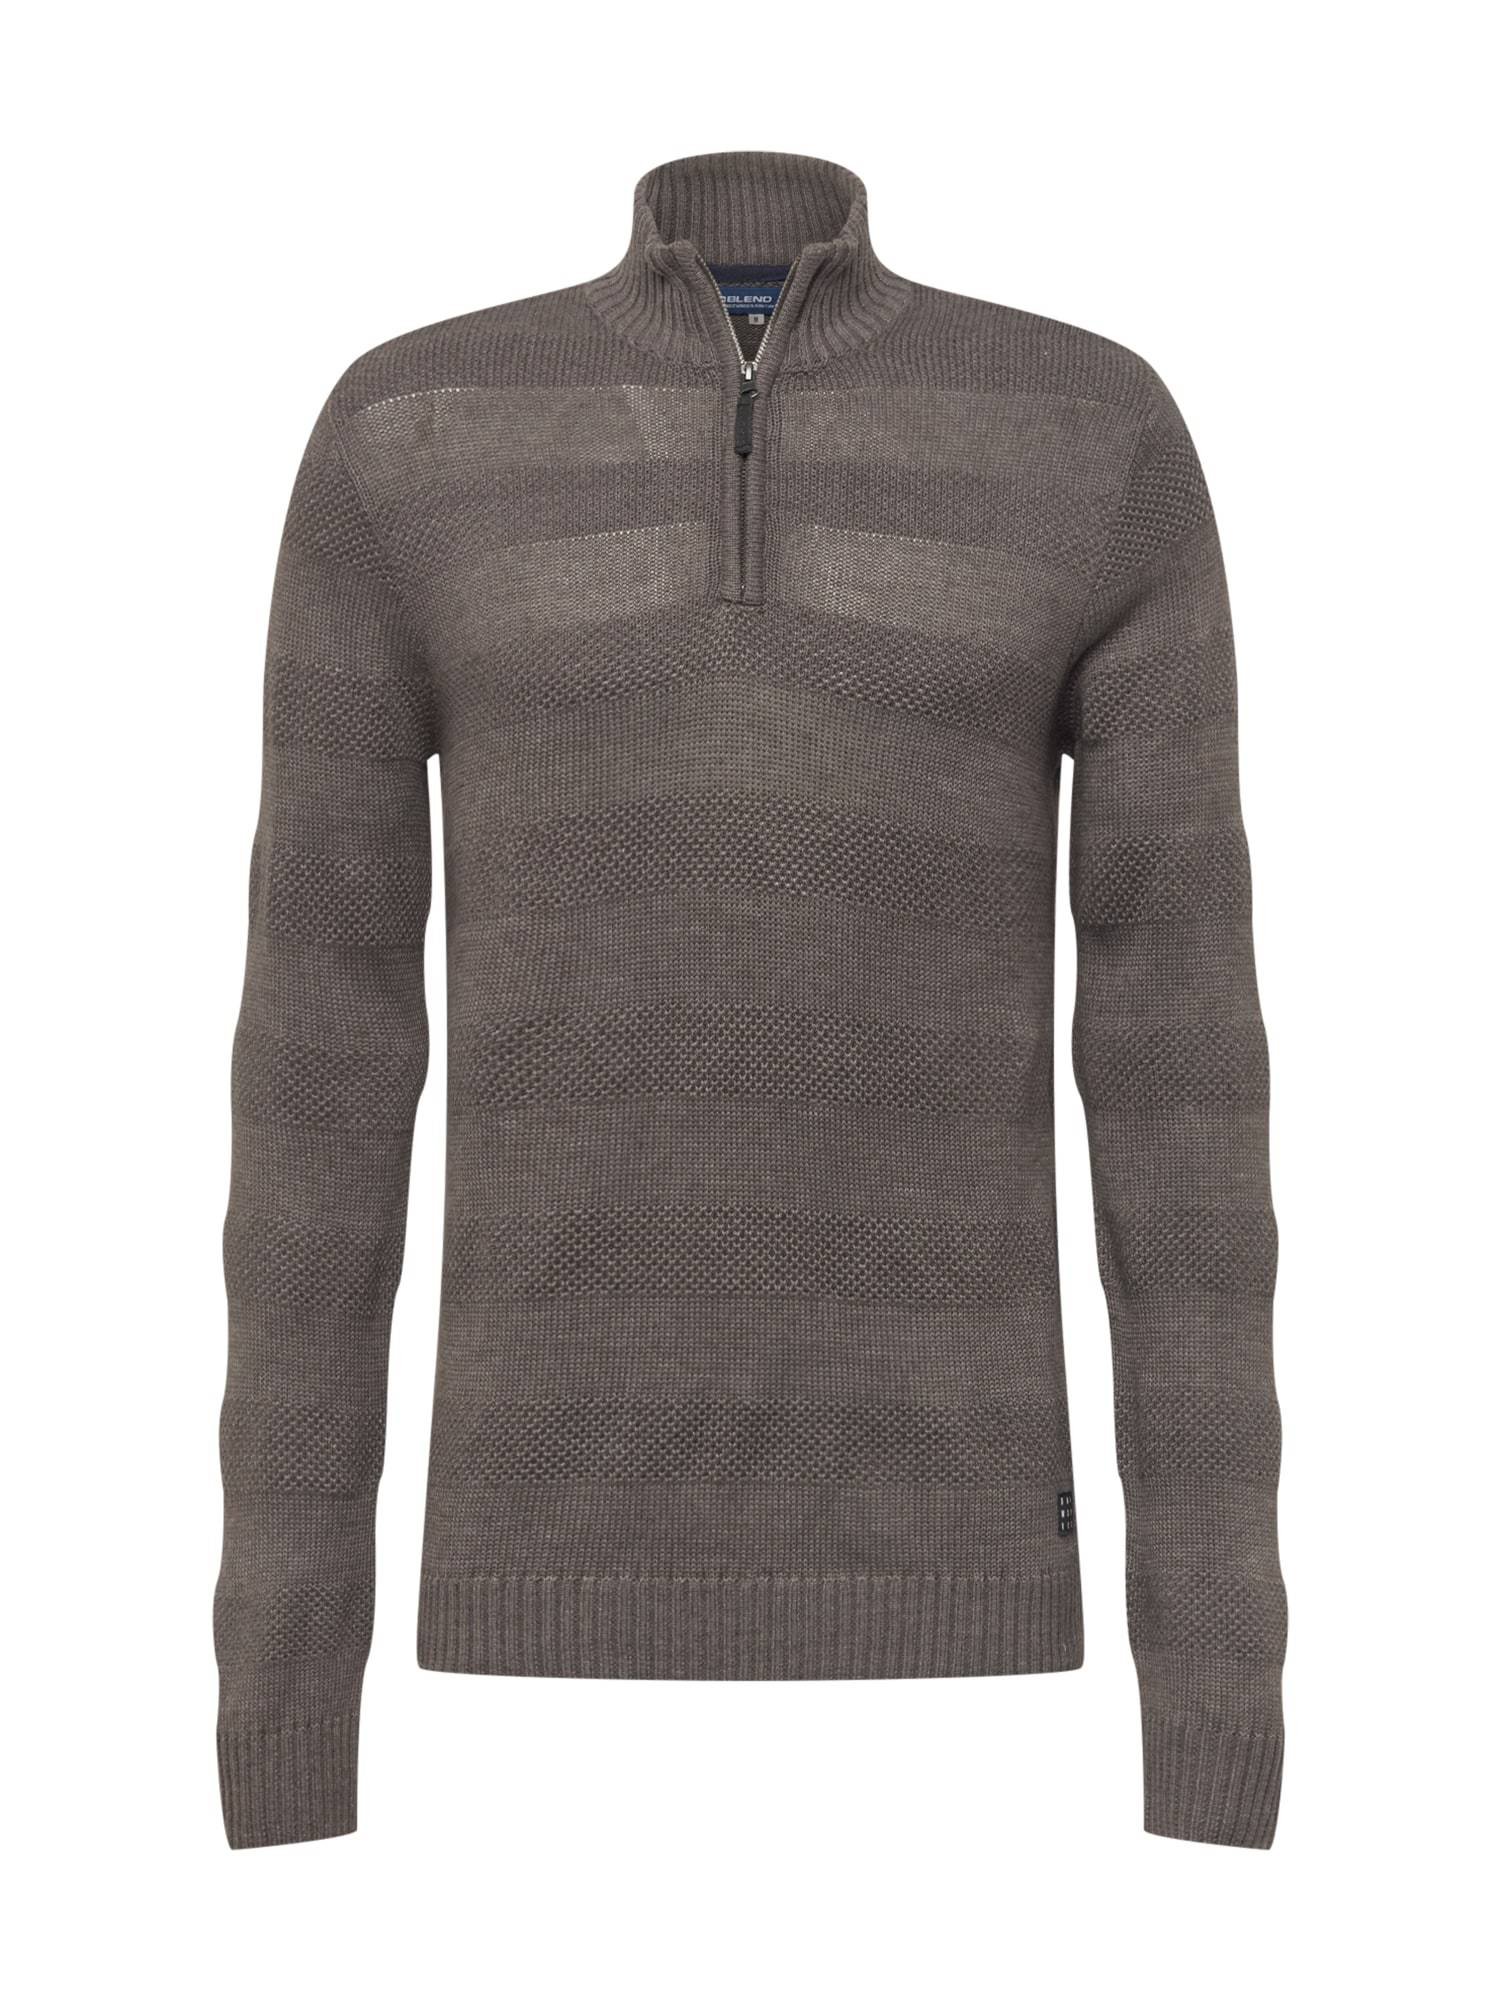 BLEND Pull-over 'Nantes'  - Gris - Taille: 3XL - male